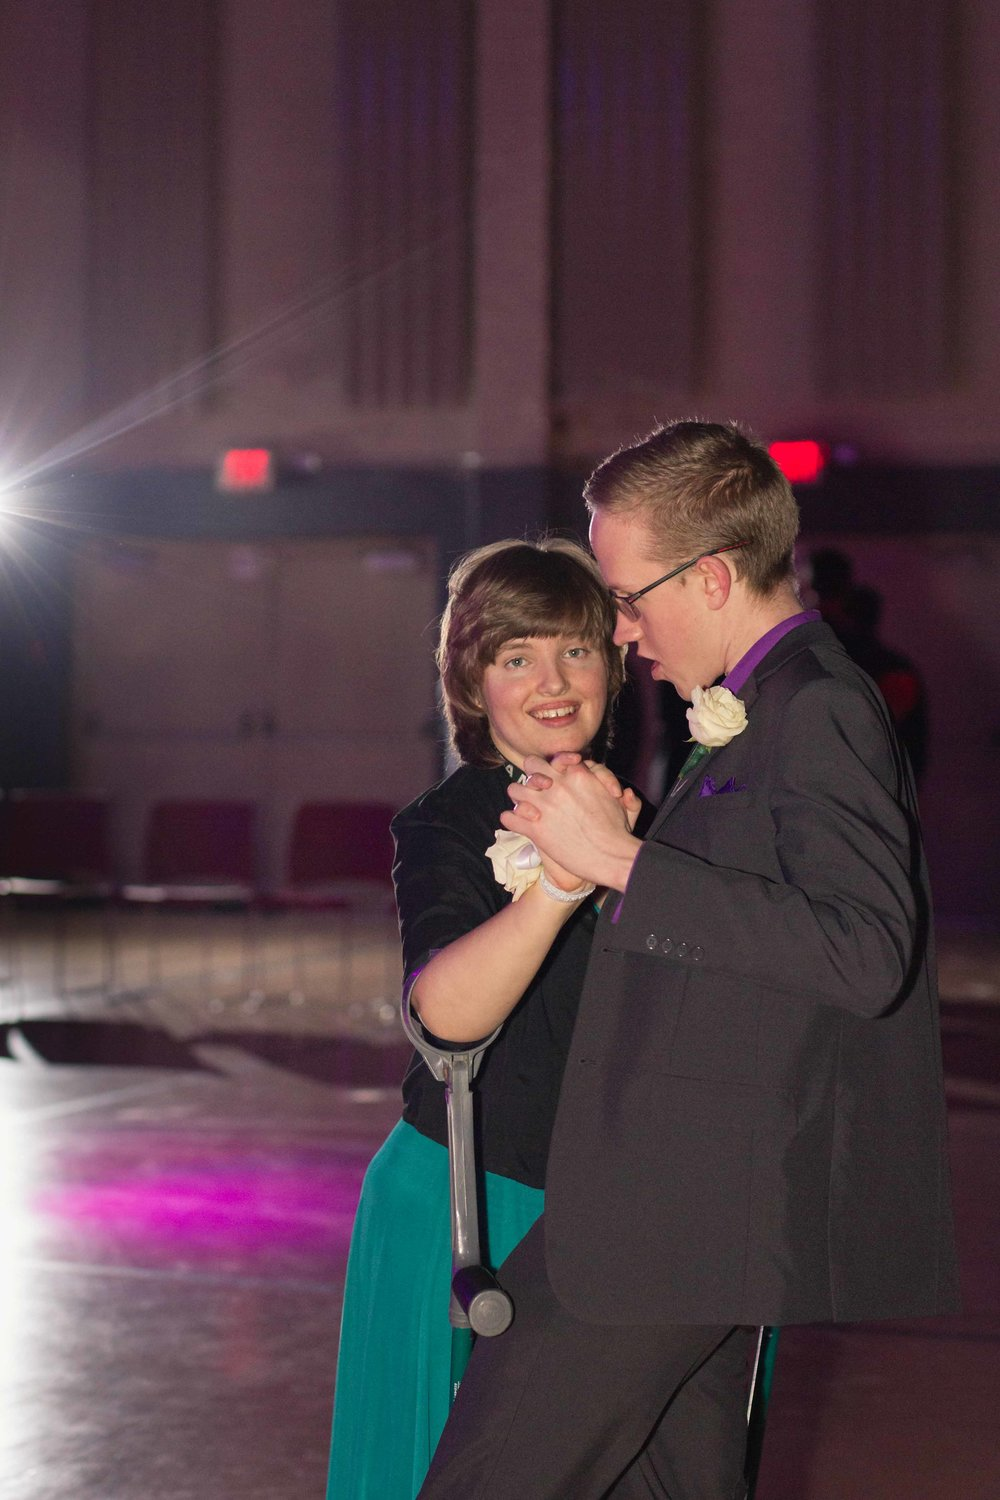 InBetweenDreamsWedding_NightToShine2018_HorizonChurch (164 of 514).jpg